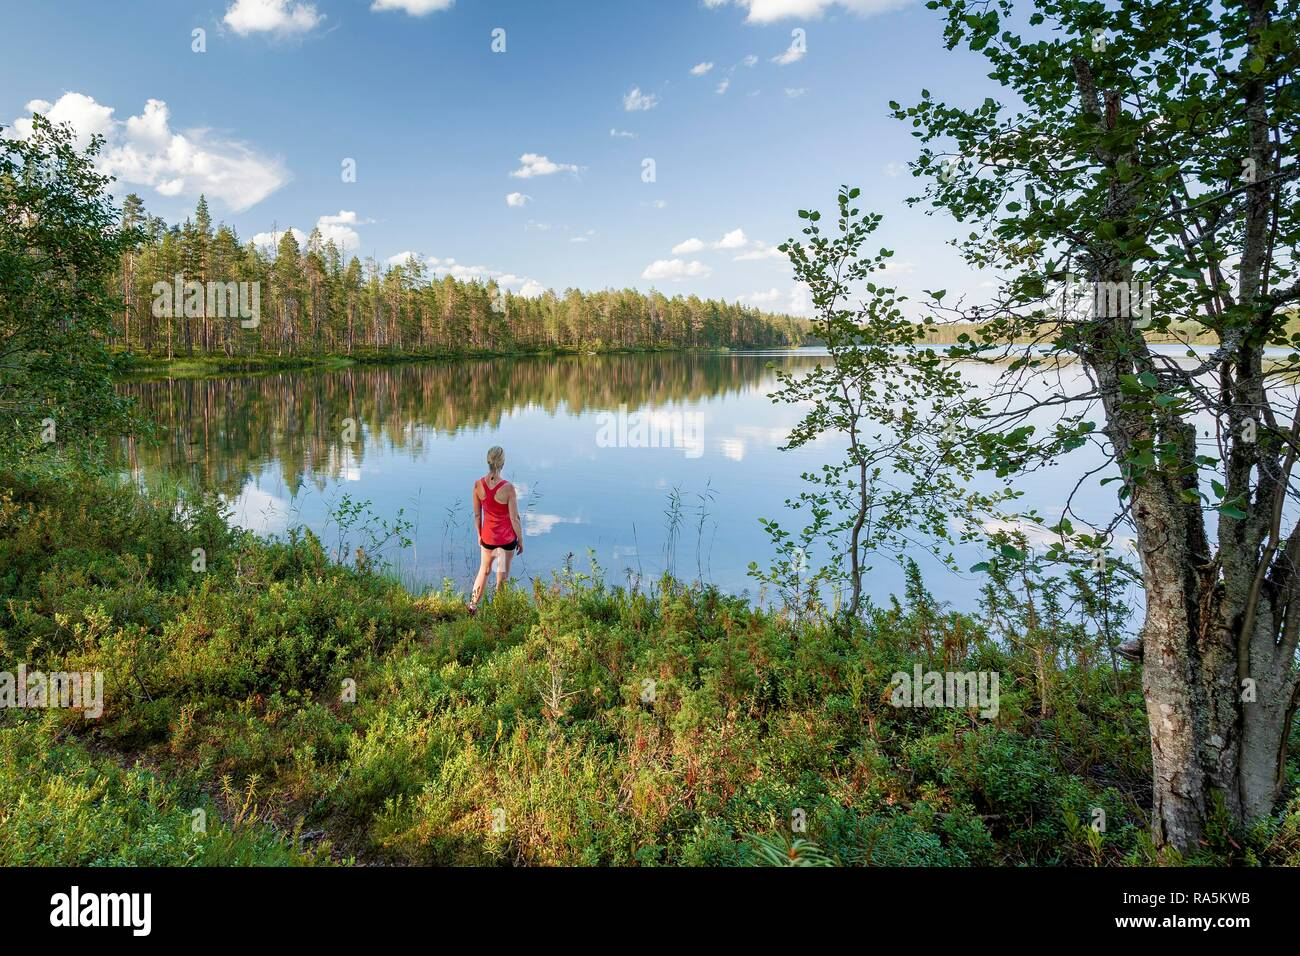 Middle-aged woman standing at the lake, forest, trees reflecting, Hossa National Park, Ruhtinansa, Suomussalmi, Kainuu, Finland - Stock Image